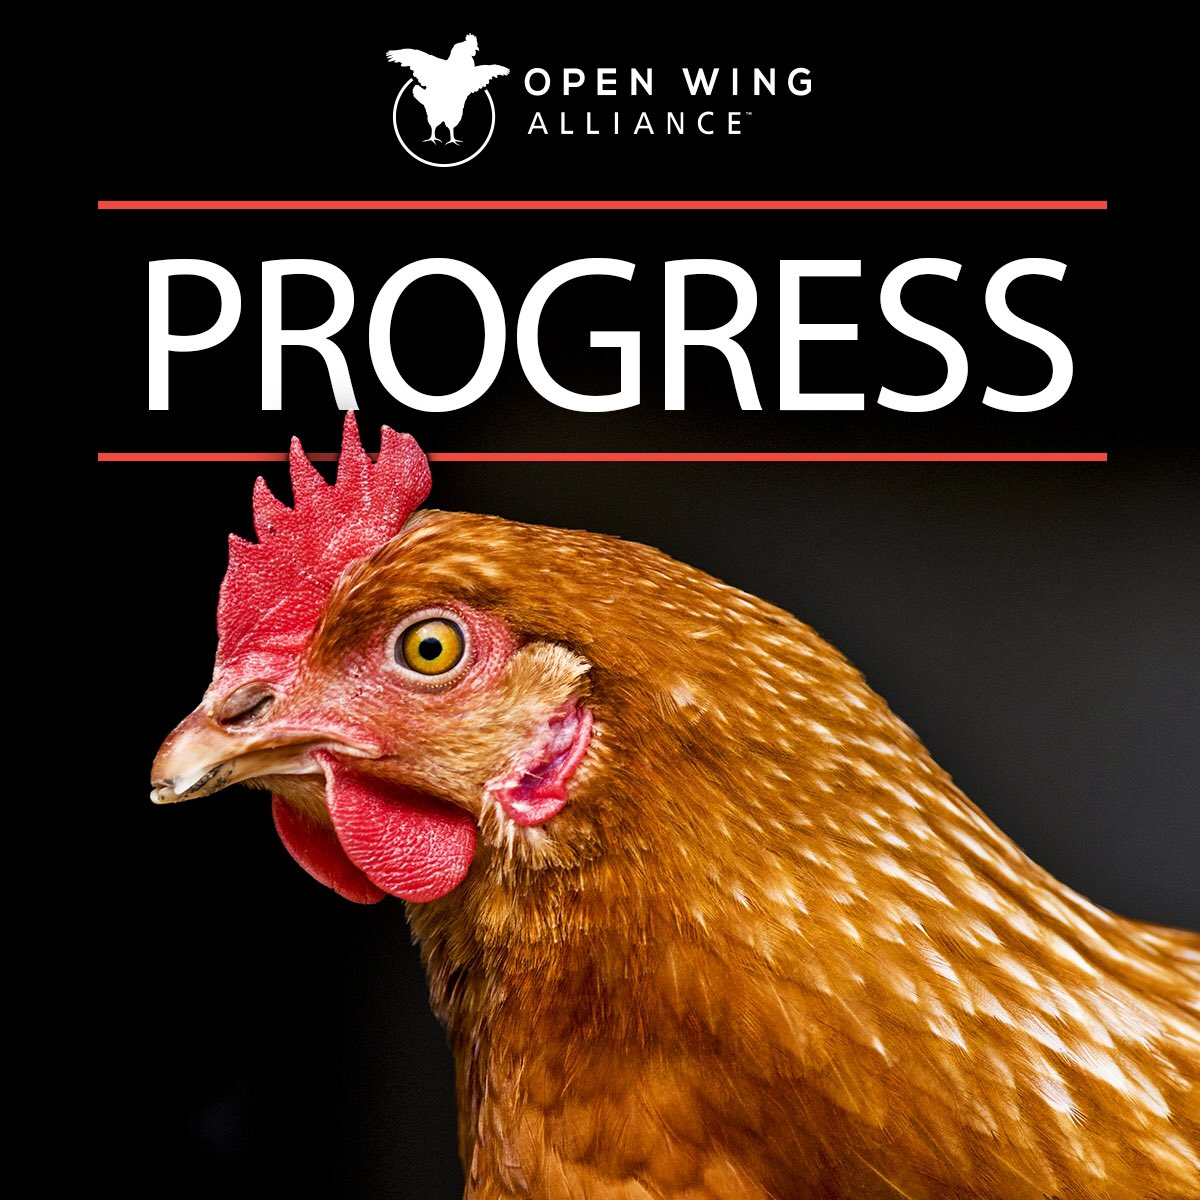 After less than 48 hours of an Open Wing Alliance campaign, @MarriottIntl has committed to banning cages that cruelly confine hens in its egg supply chain.  Animal Equality is a proud member of the Open Wing Alliance that is comprised of nearly 60 organizations. #progress